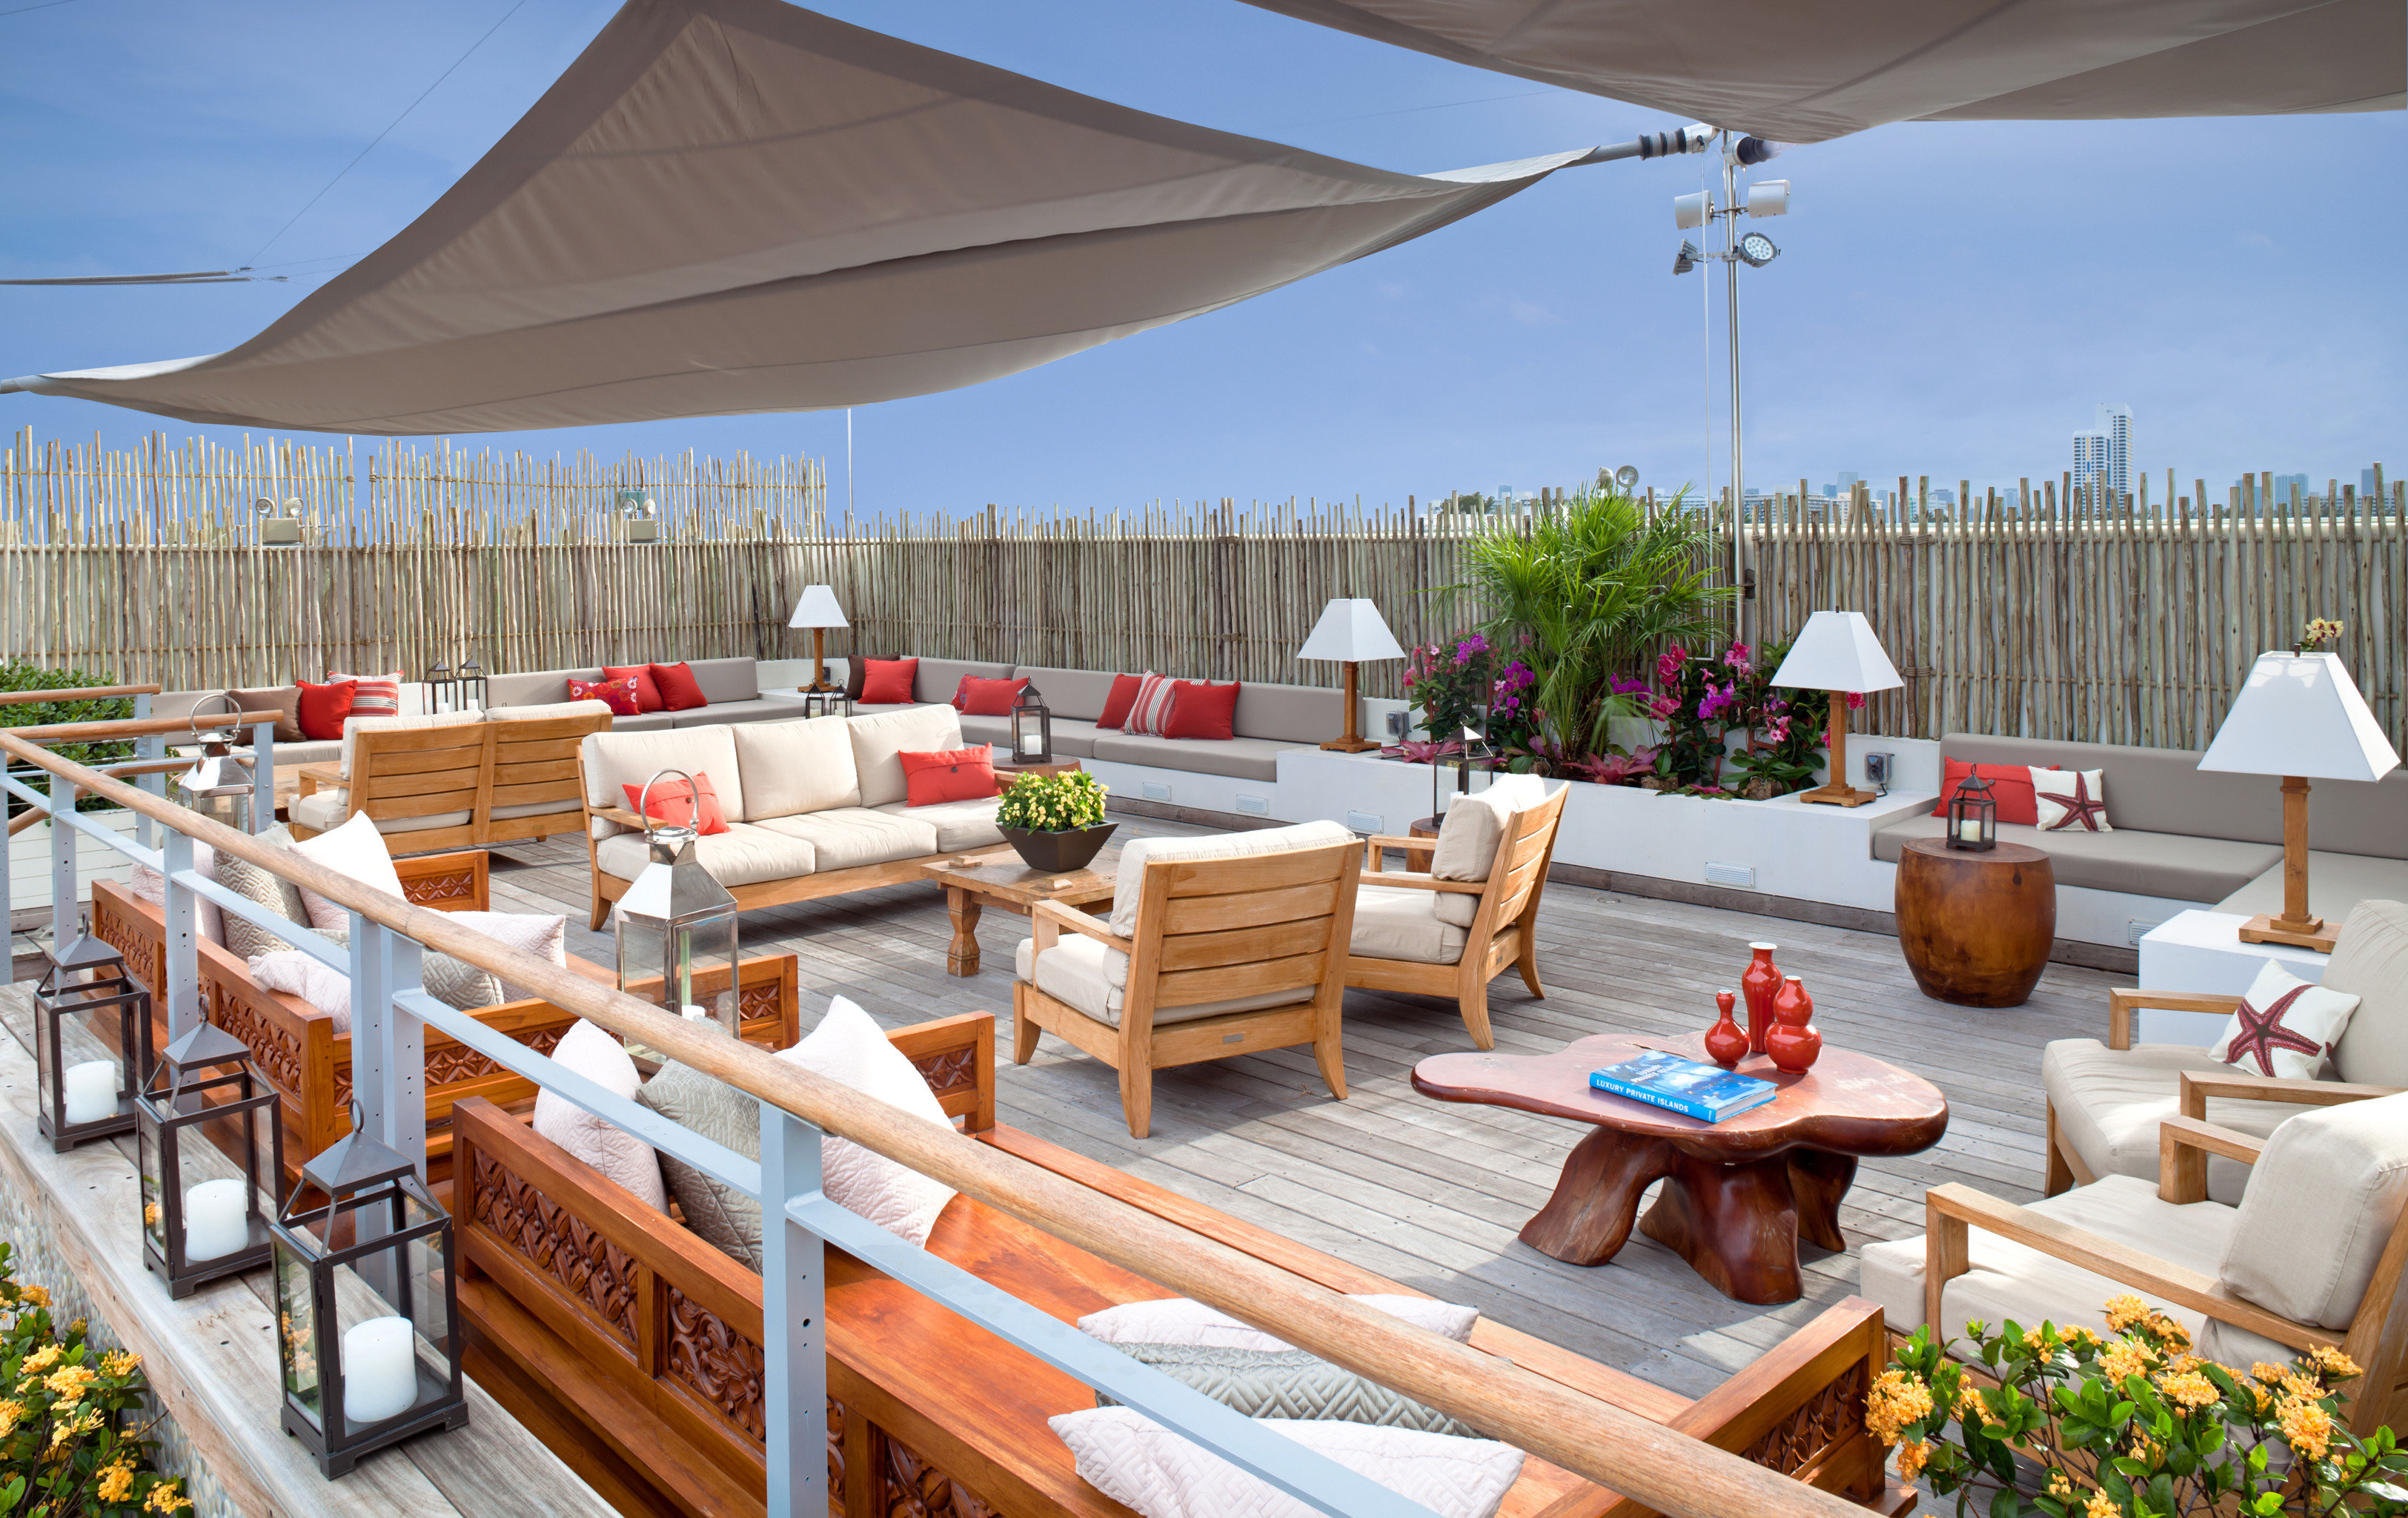 Hotels Lounge Patio Resort Rooftop sky chair wooden cottage outdoor structure Villa